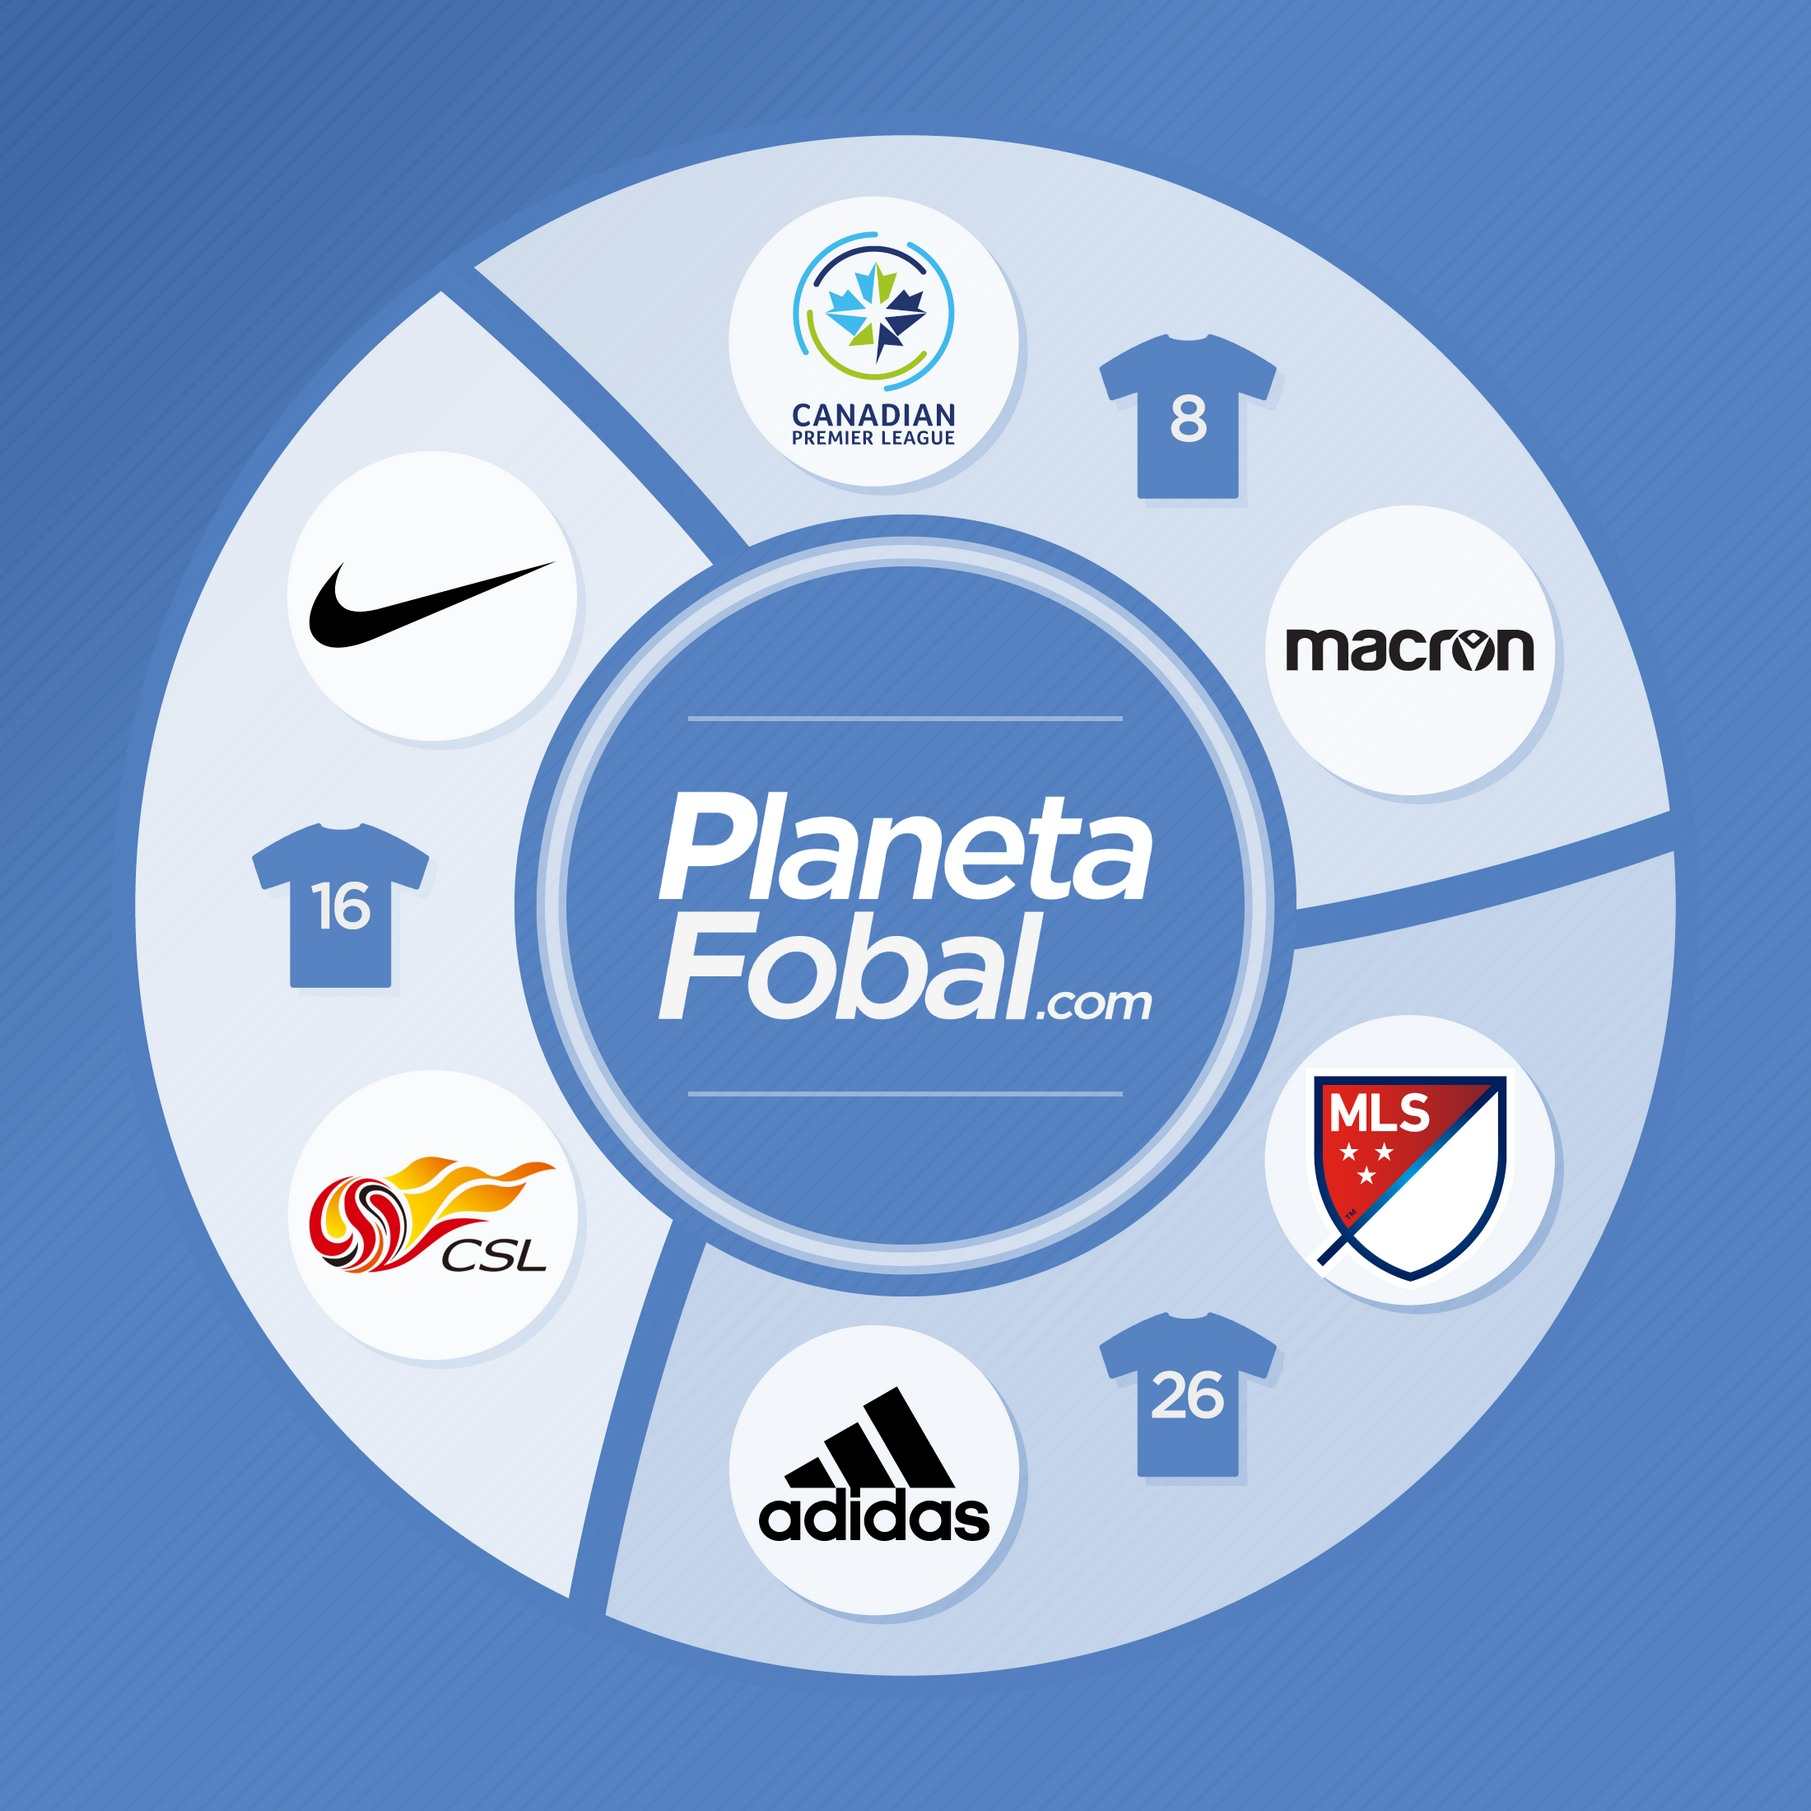 Nike en la Superliga China, Adidas en la MLS y Macron en la Canadian Premier League